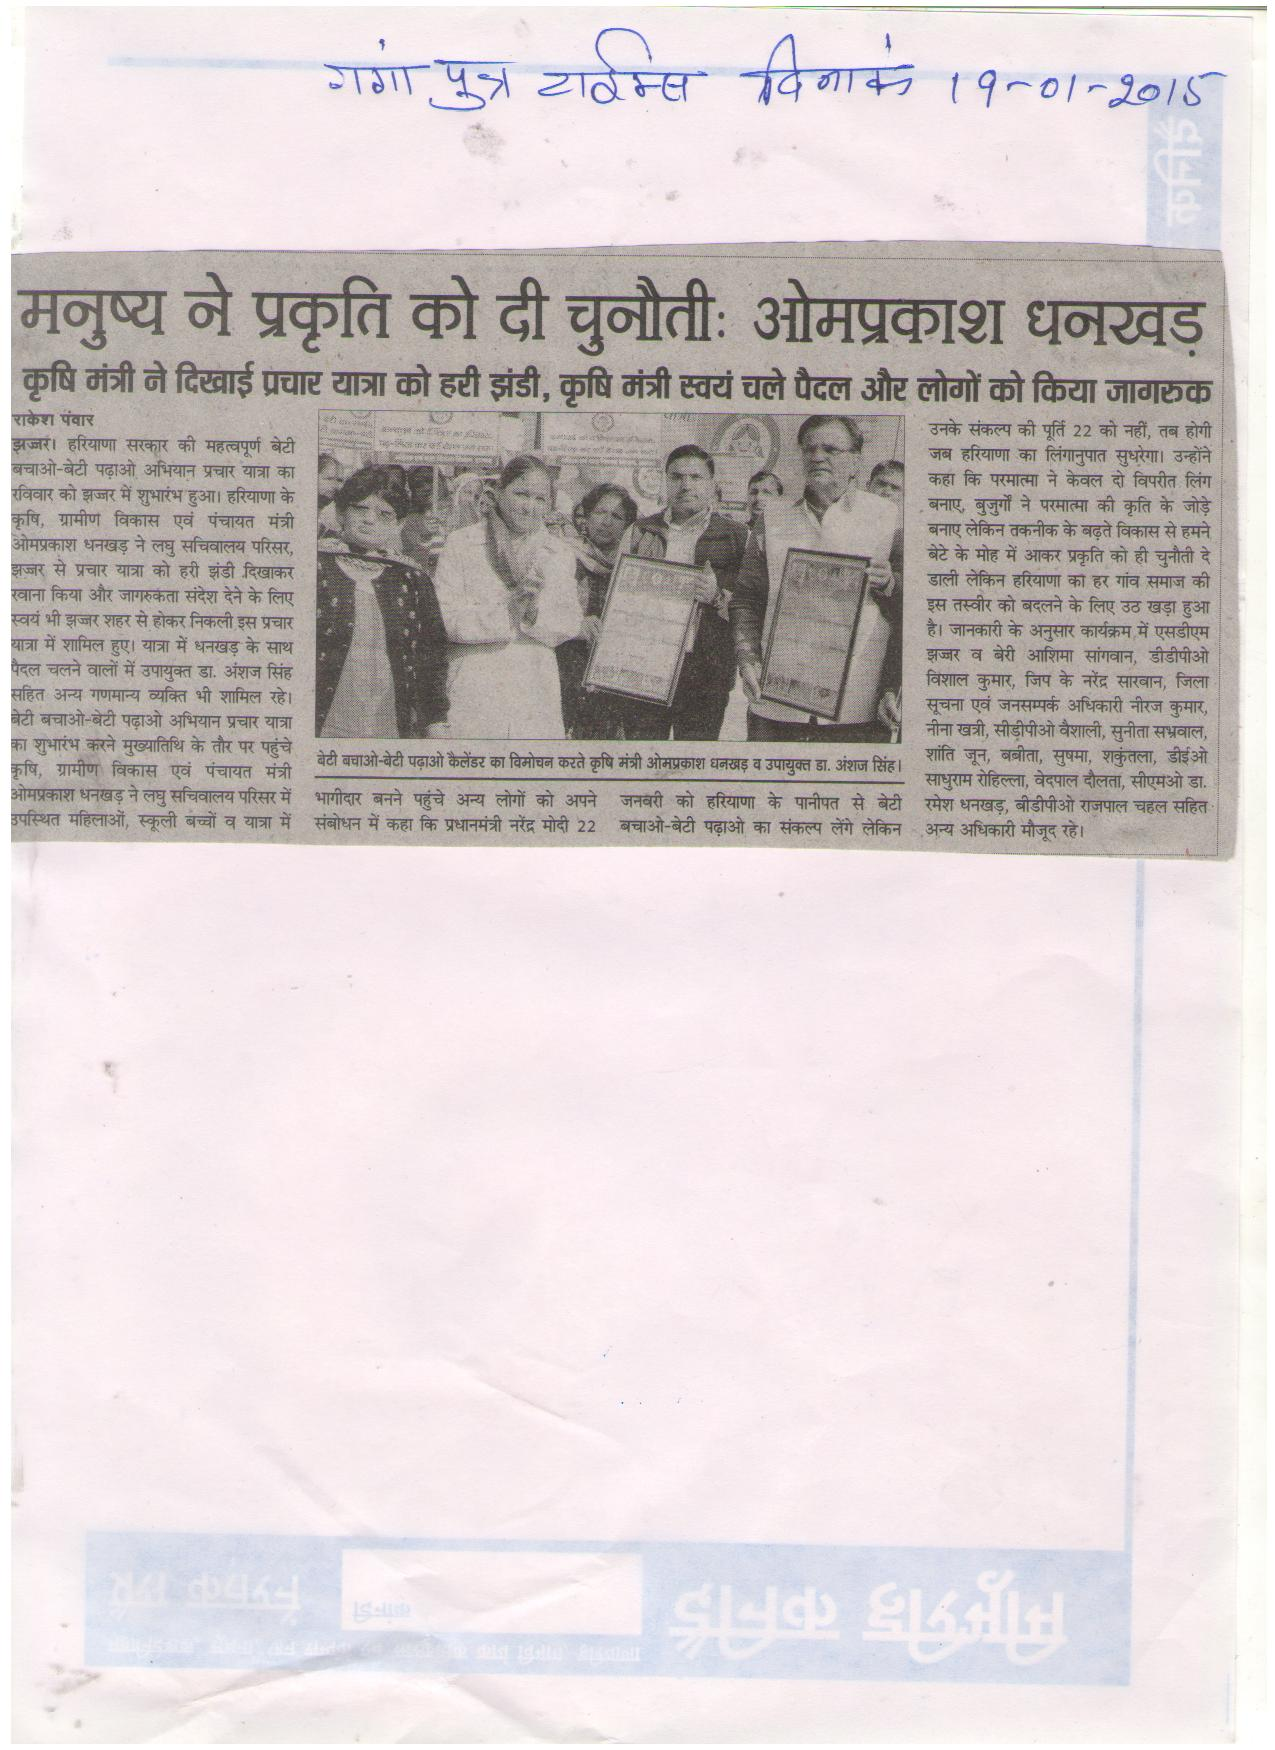 News Clipping regarding Beti Bachao-Beti Padhao - Photo 9